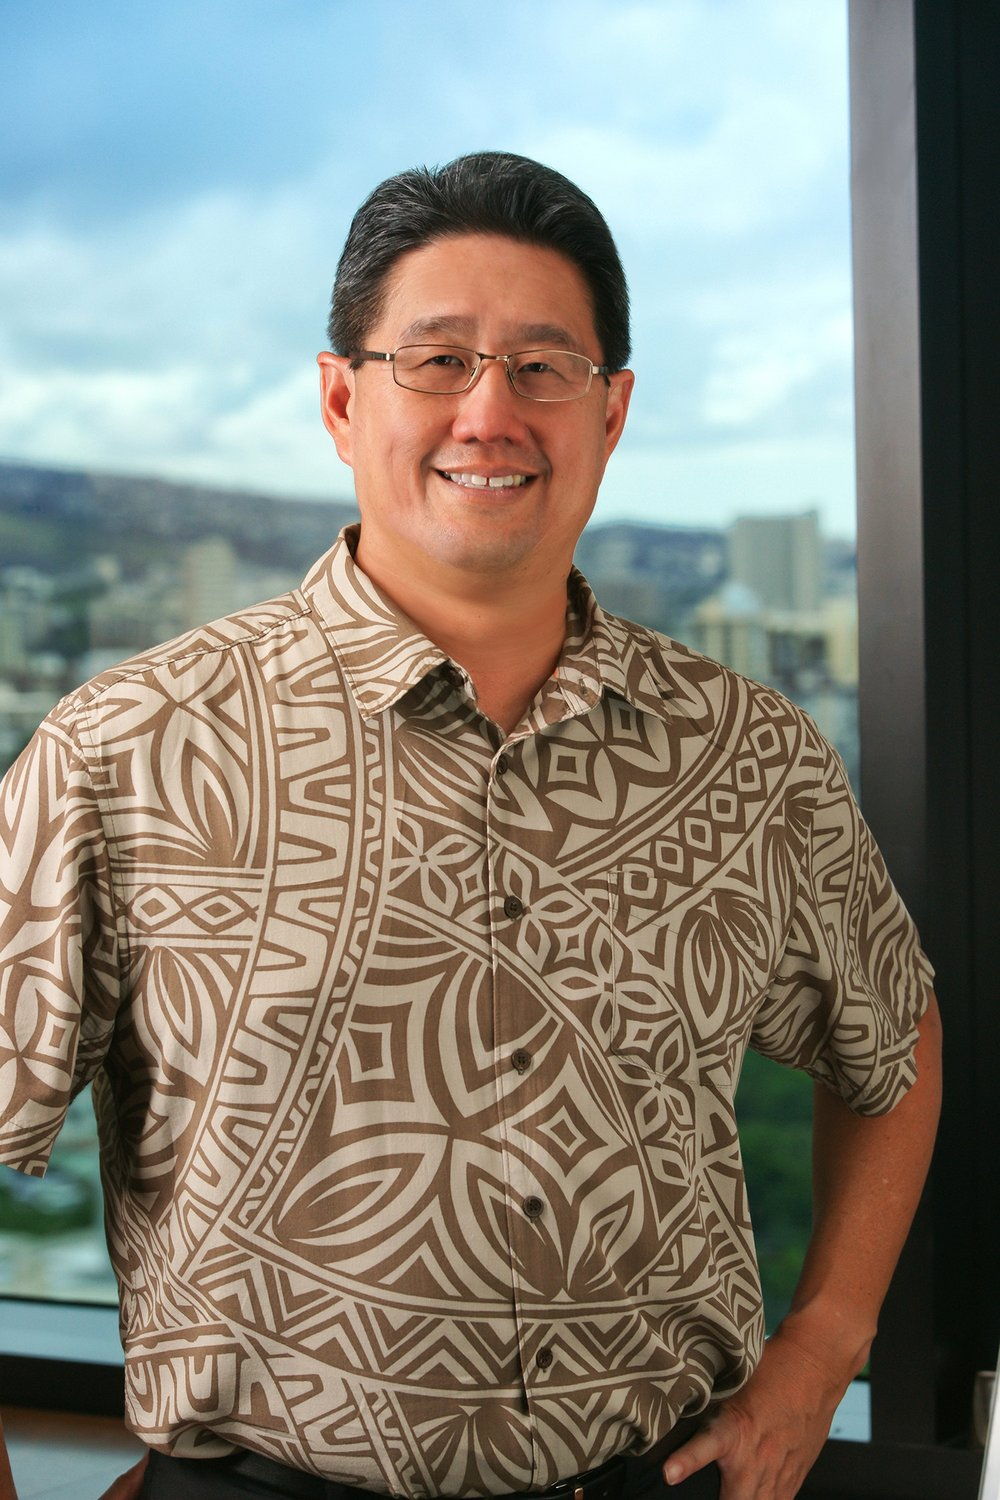 PKF_Rodney Lee-Aloha Full_reduced.jpg